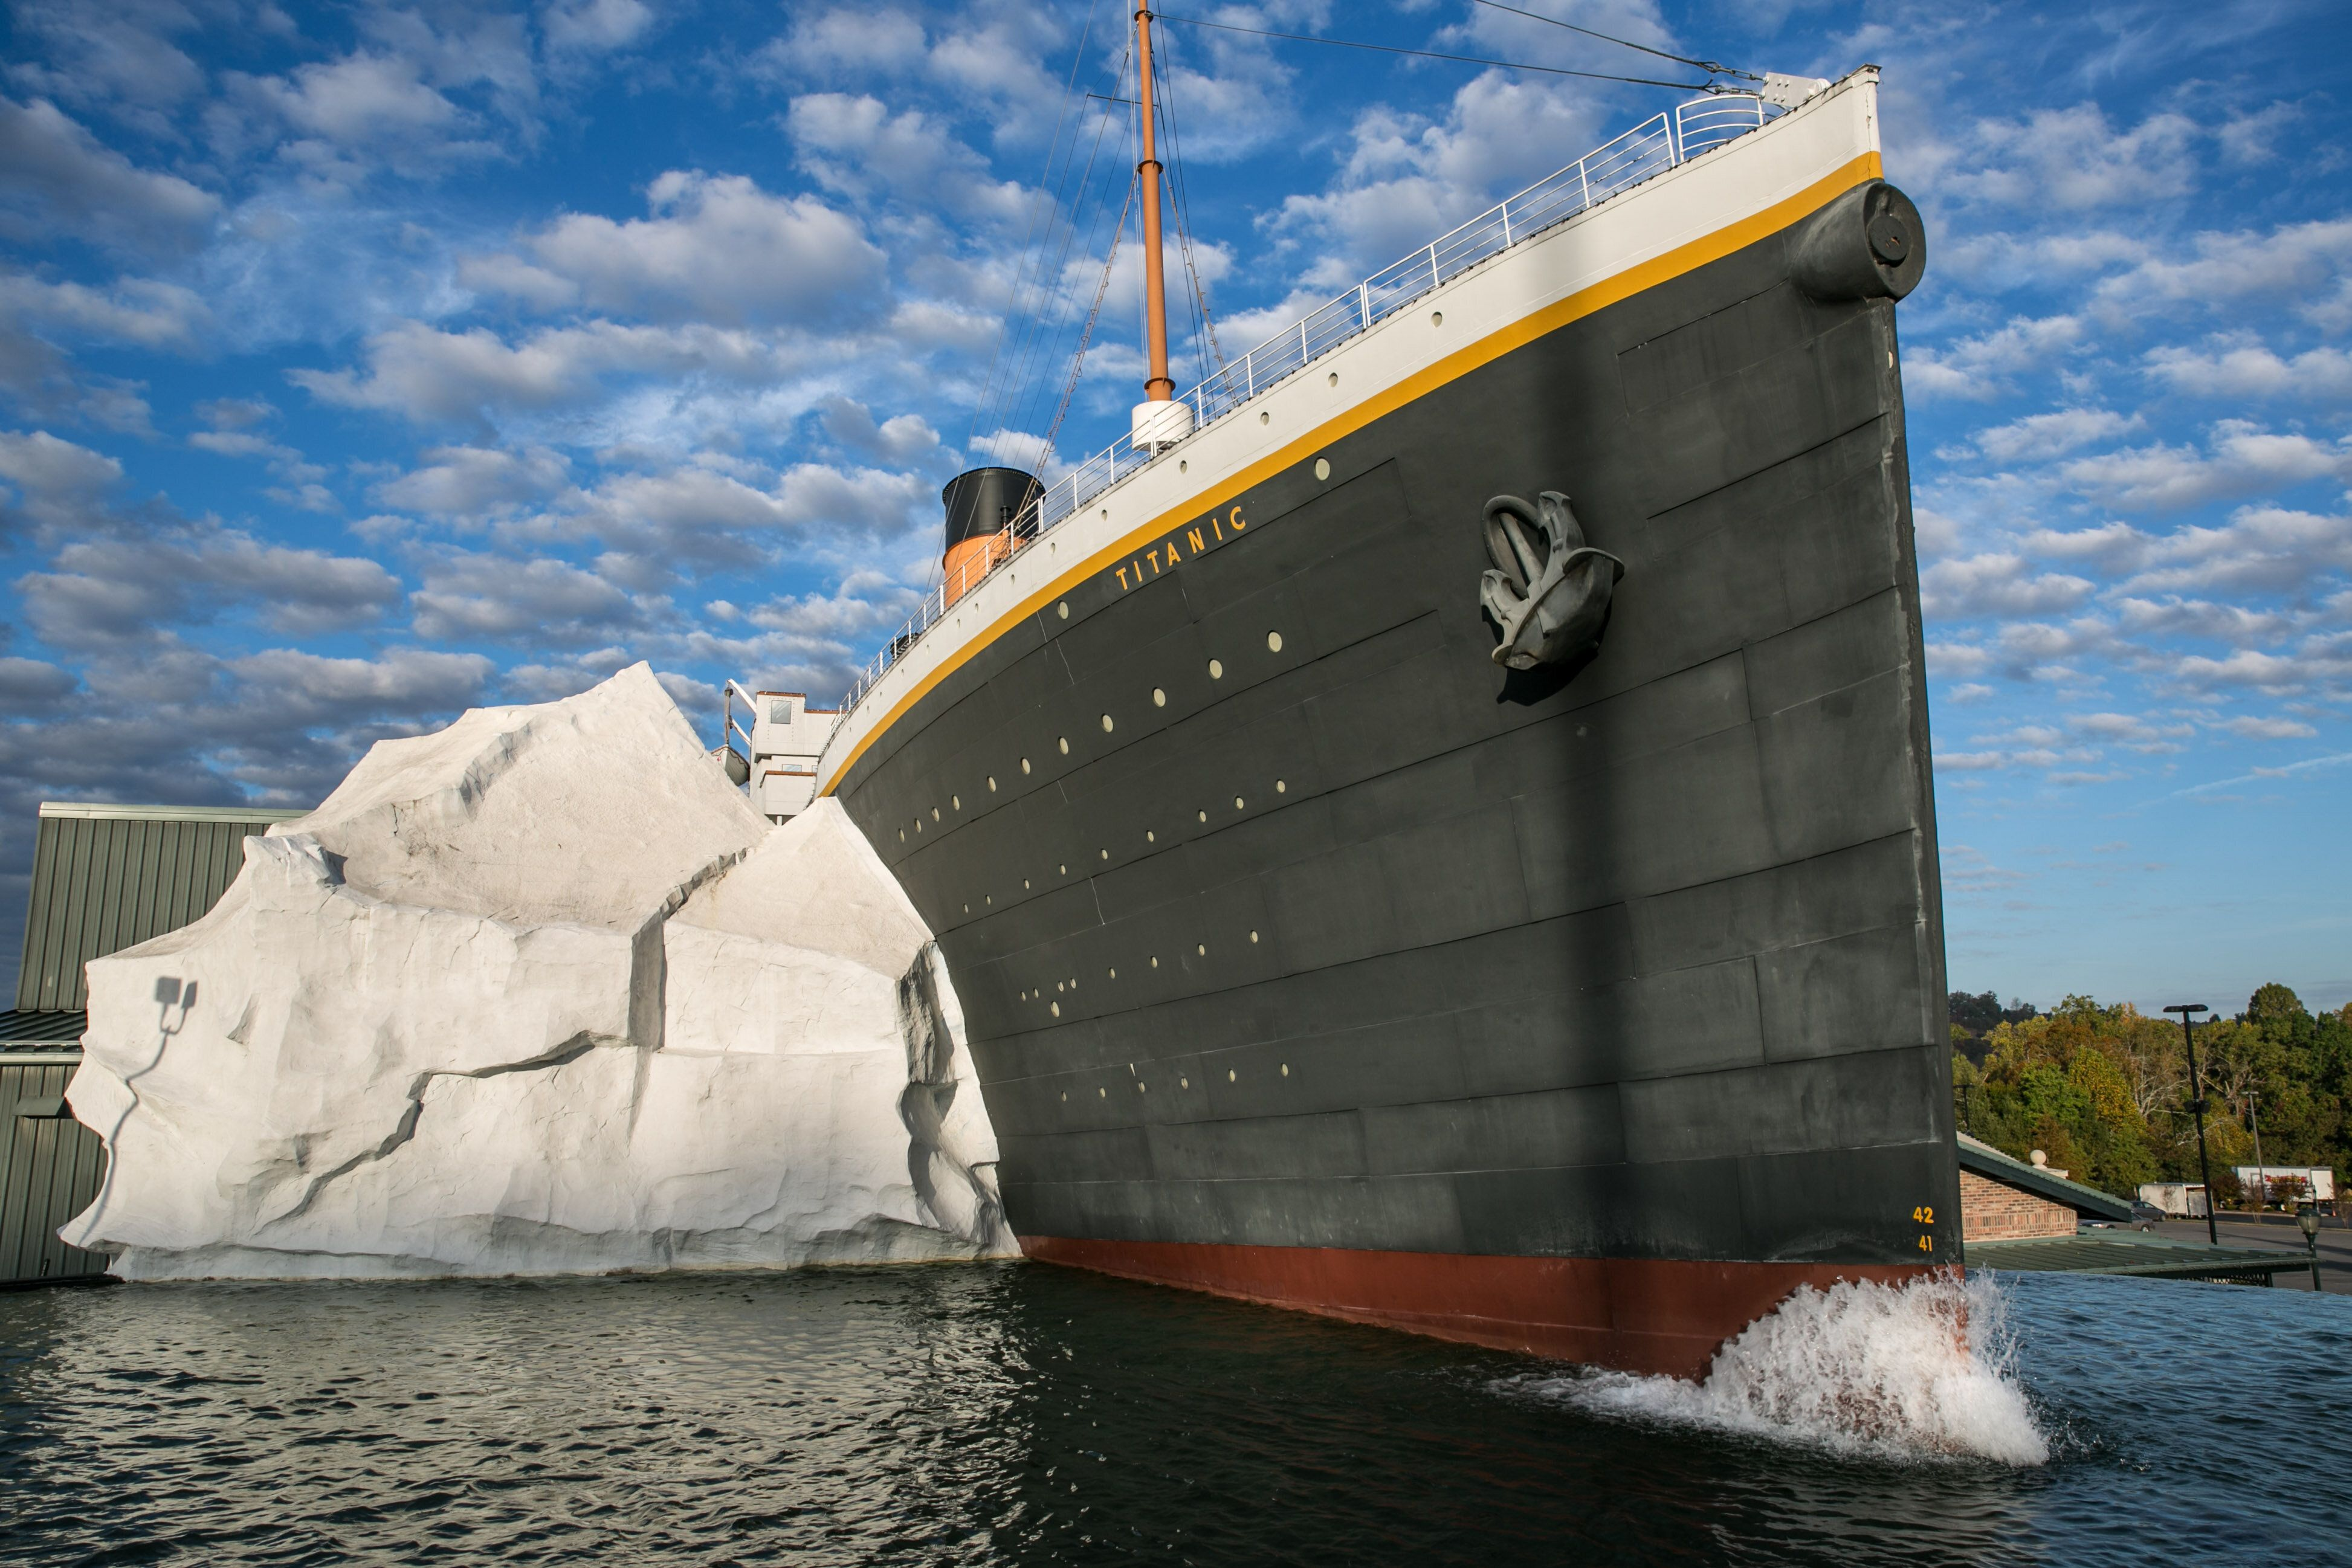 A half-scale replica of the Titanic hitting an iceberg is a main feature of the Titanic Museum as viewed in October 2016.